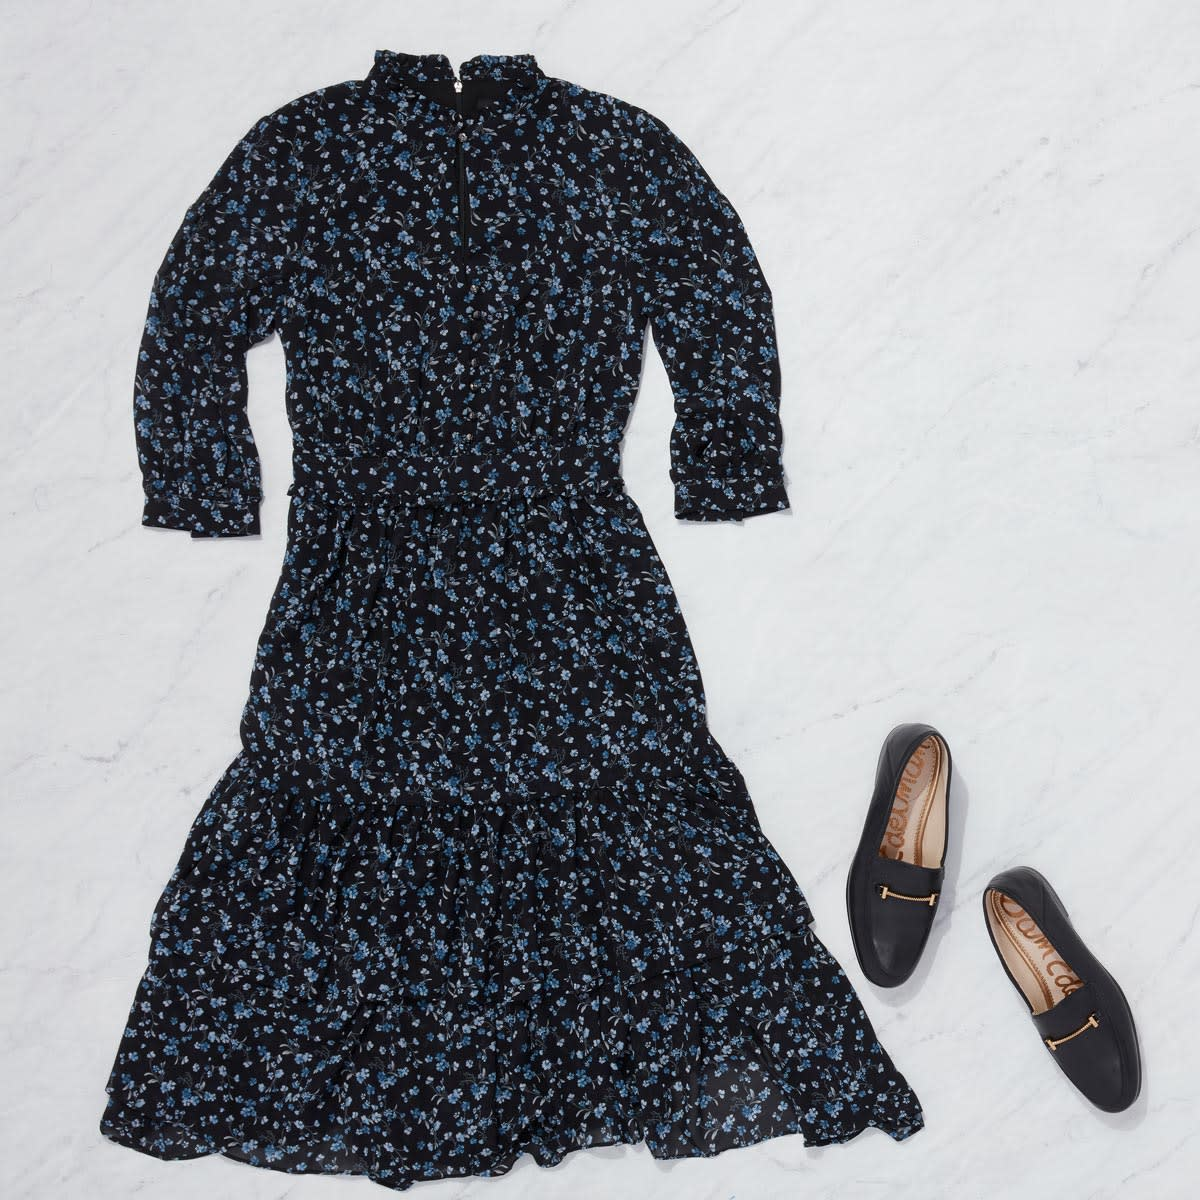 Floral Midi dress with loafers outfit